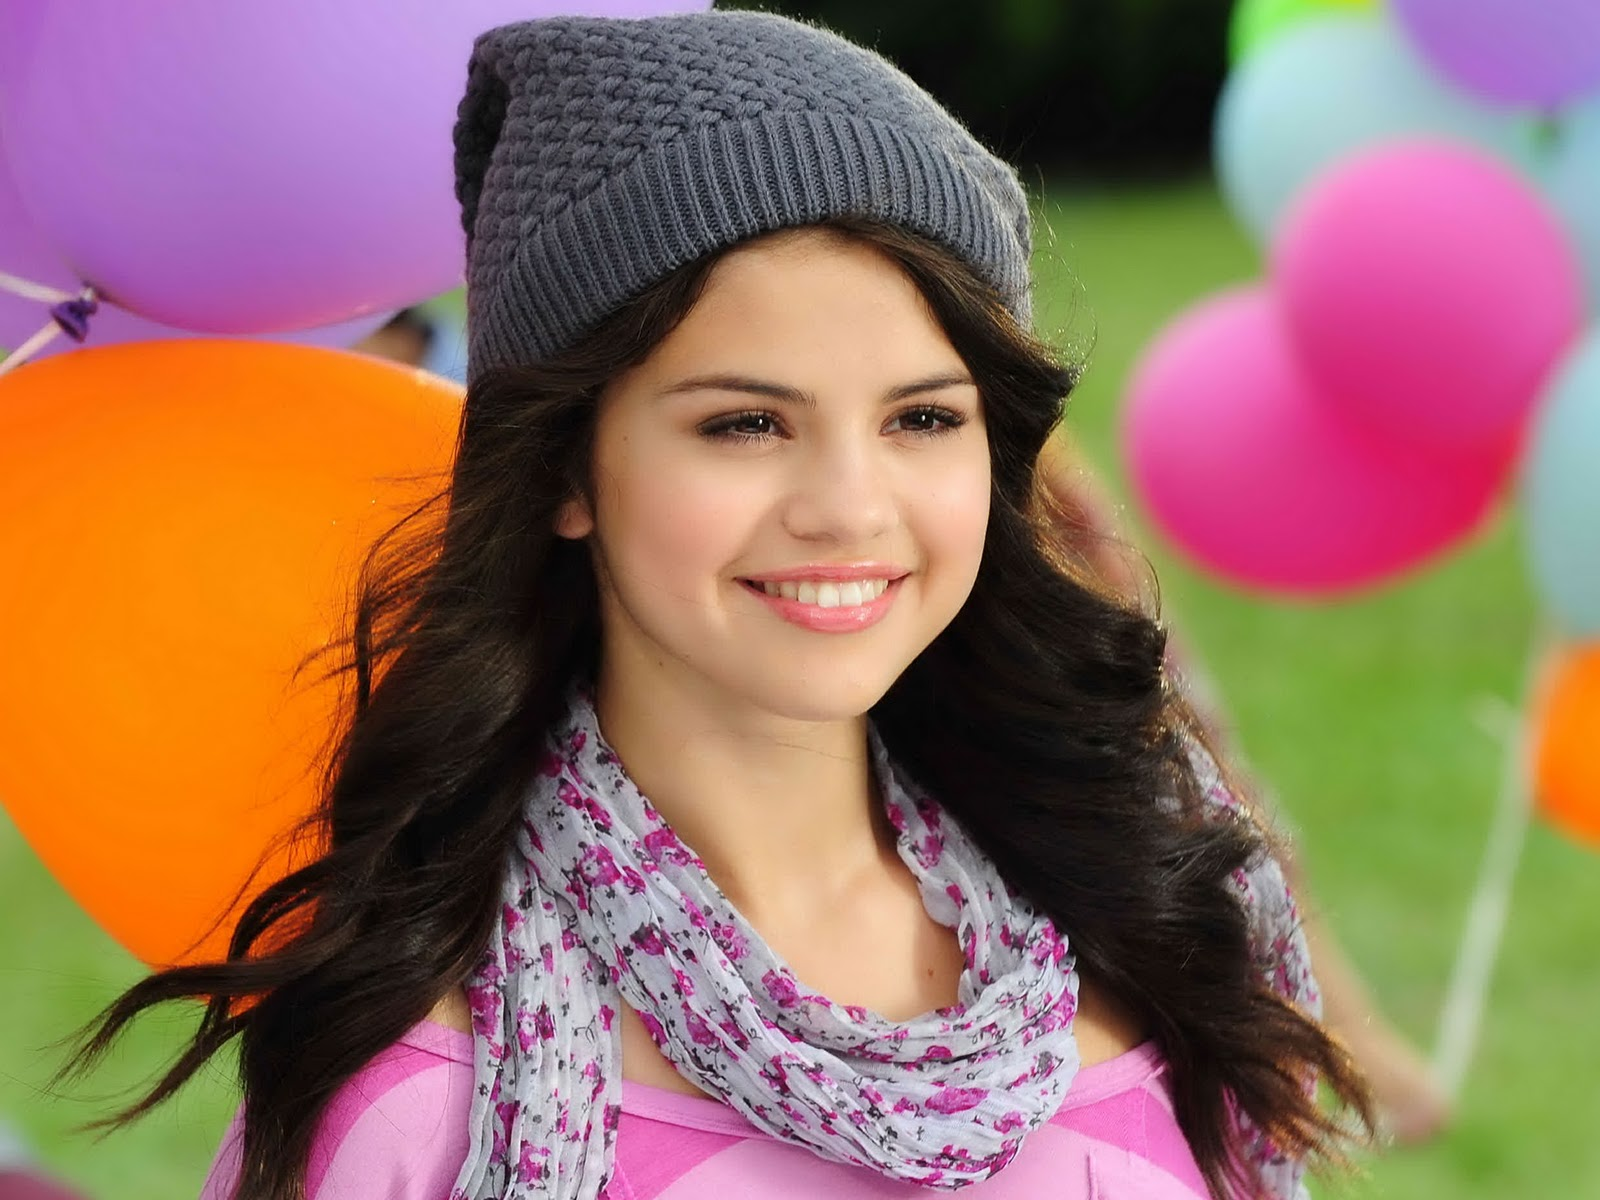 http://1.bp.blogspot.com/-sF1S2fM3QRQ/TYbOSPfI7JI/AAAAAAAAACY/Y-uLUewwwok/s1600/The-best-top-desktop-selena-gomez-wallpapers-selena-gomez-wallpaper-hd-15.jpg